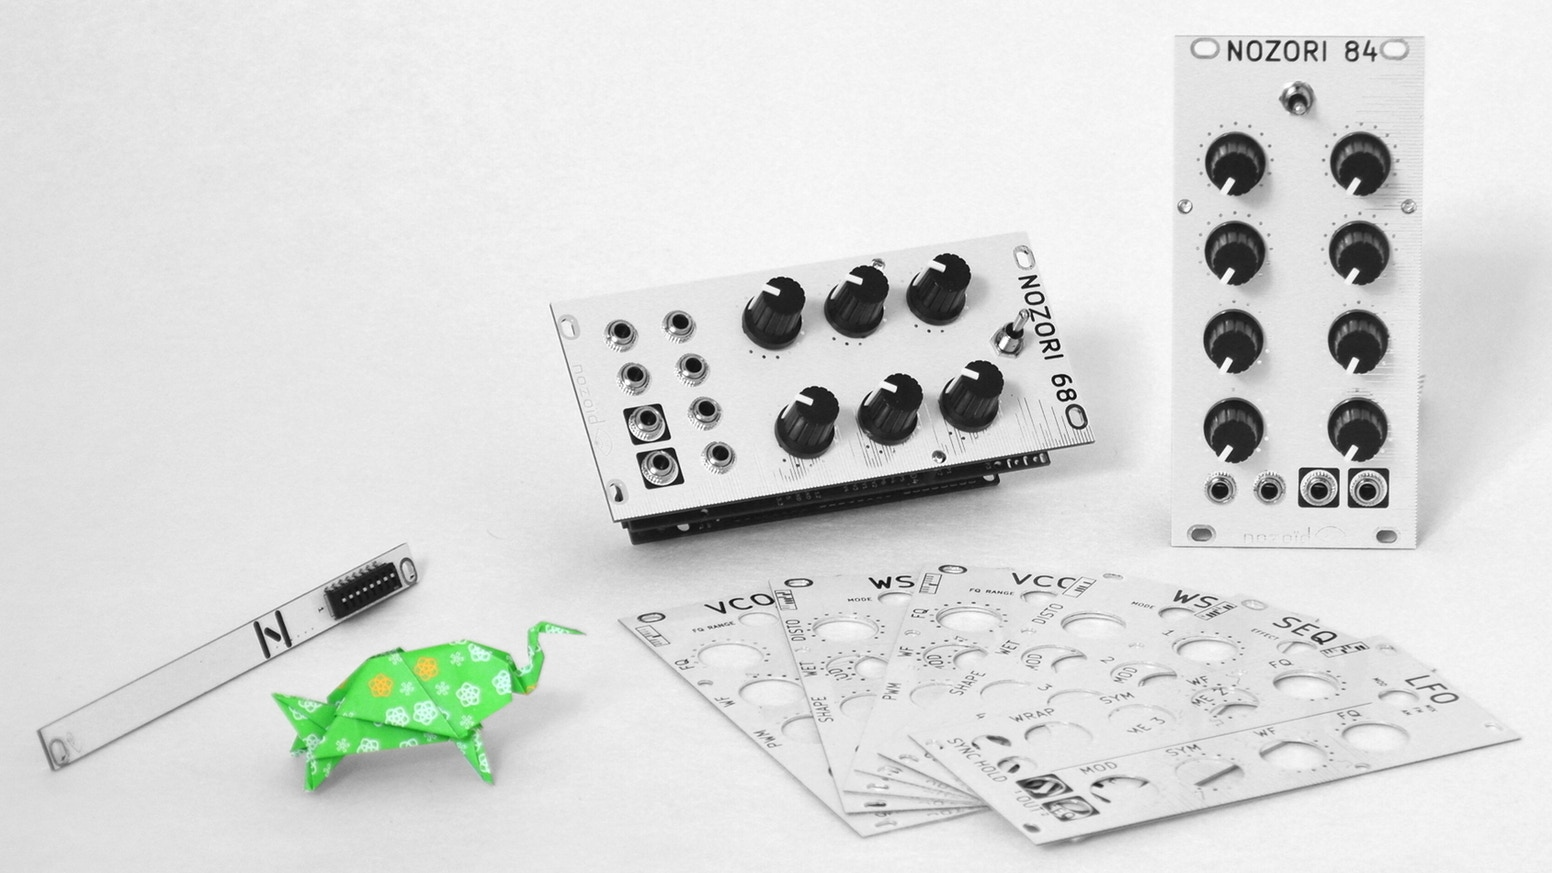 A single piece of paper can be folded into innumerable shapes. A single Nozori platform can morph into multiple eurorack modules.